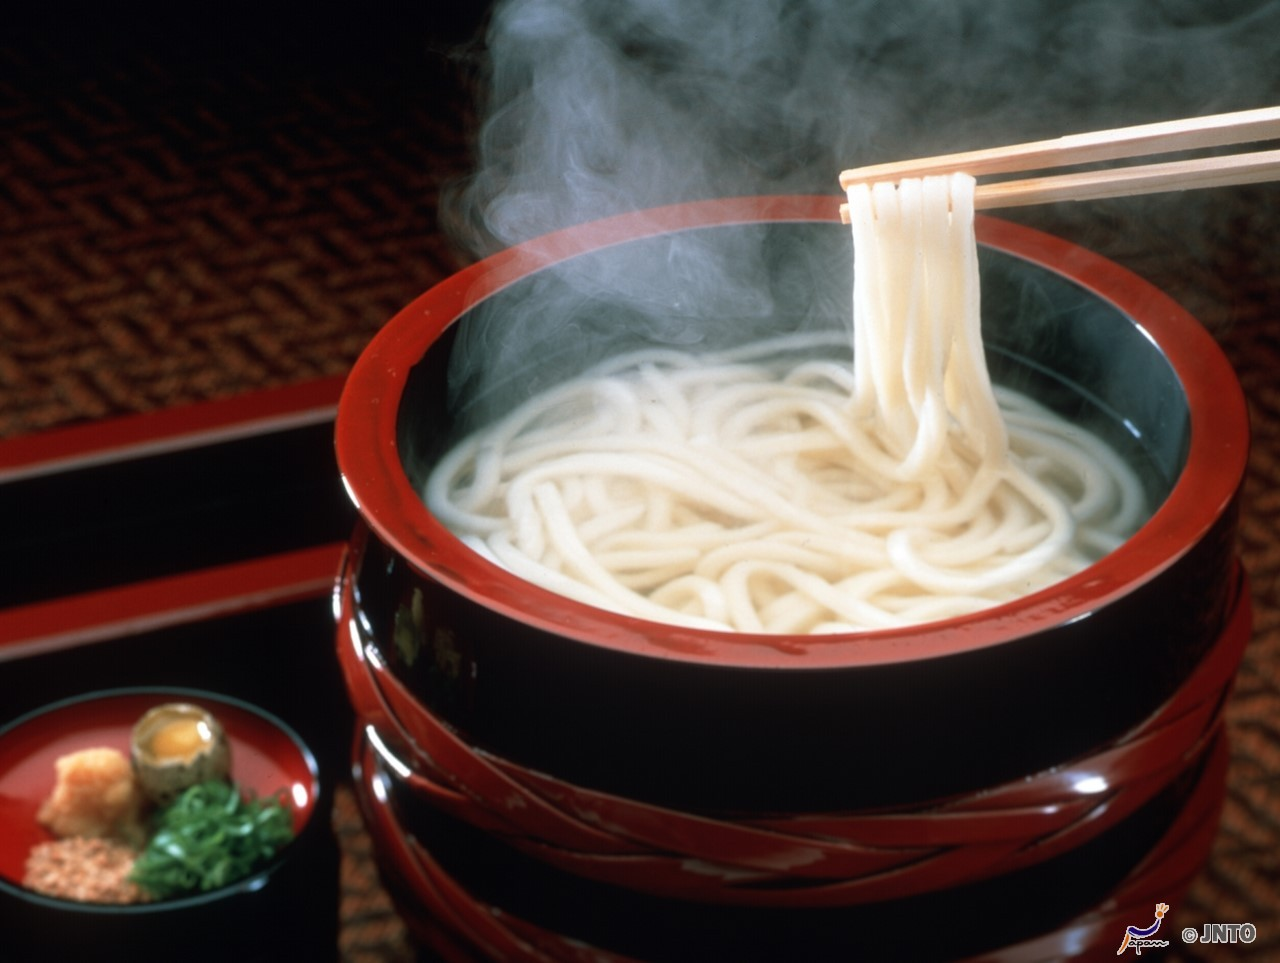 Guests can master the art of making udon noodles with an expert in Kotohira on Trafalgar's Leisurely Japan with Tokyo 2017 itinerary. (Photo credit: Japan National Tourism Organization)